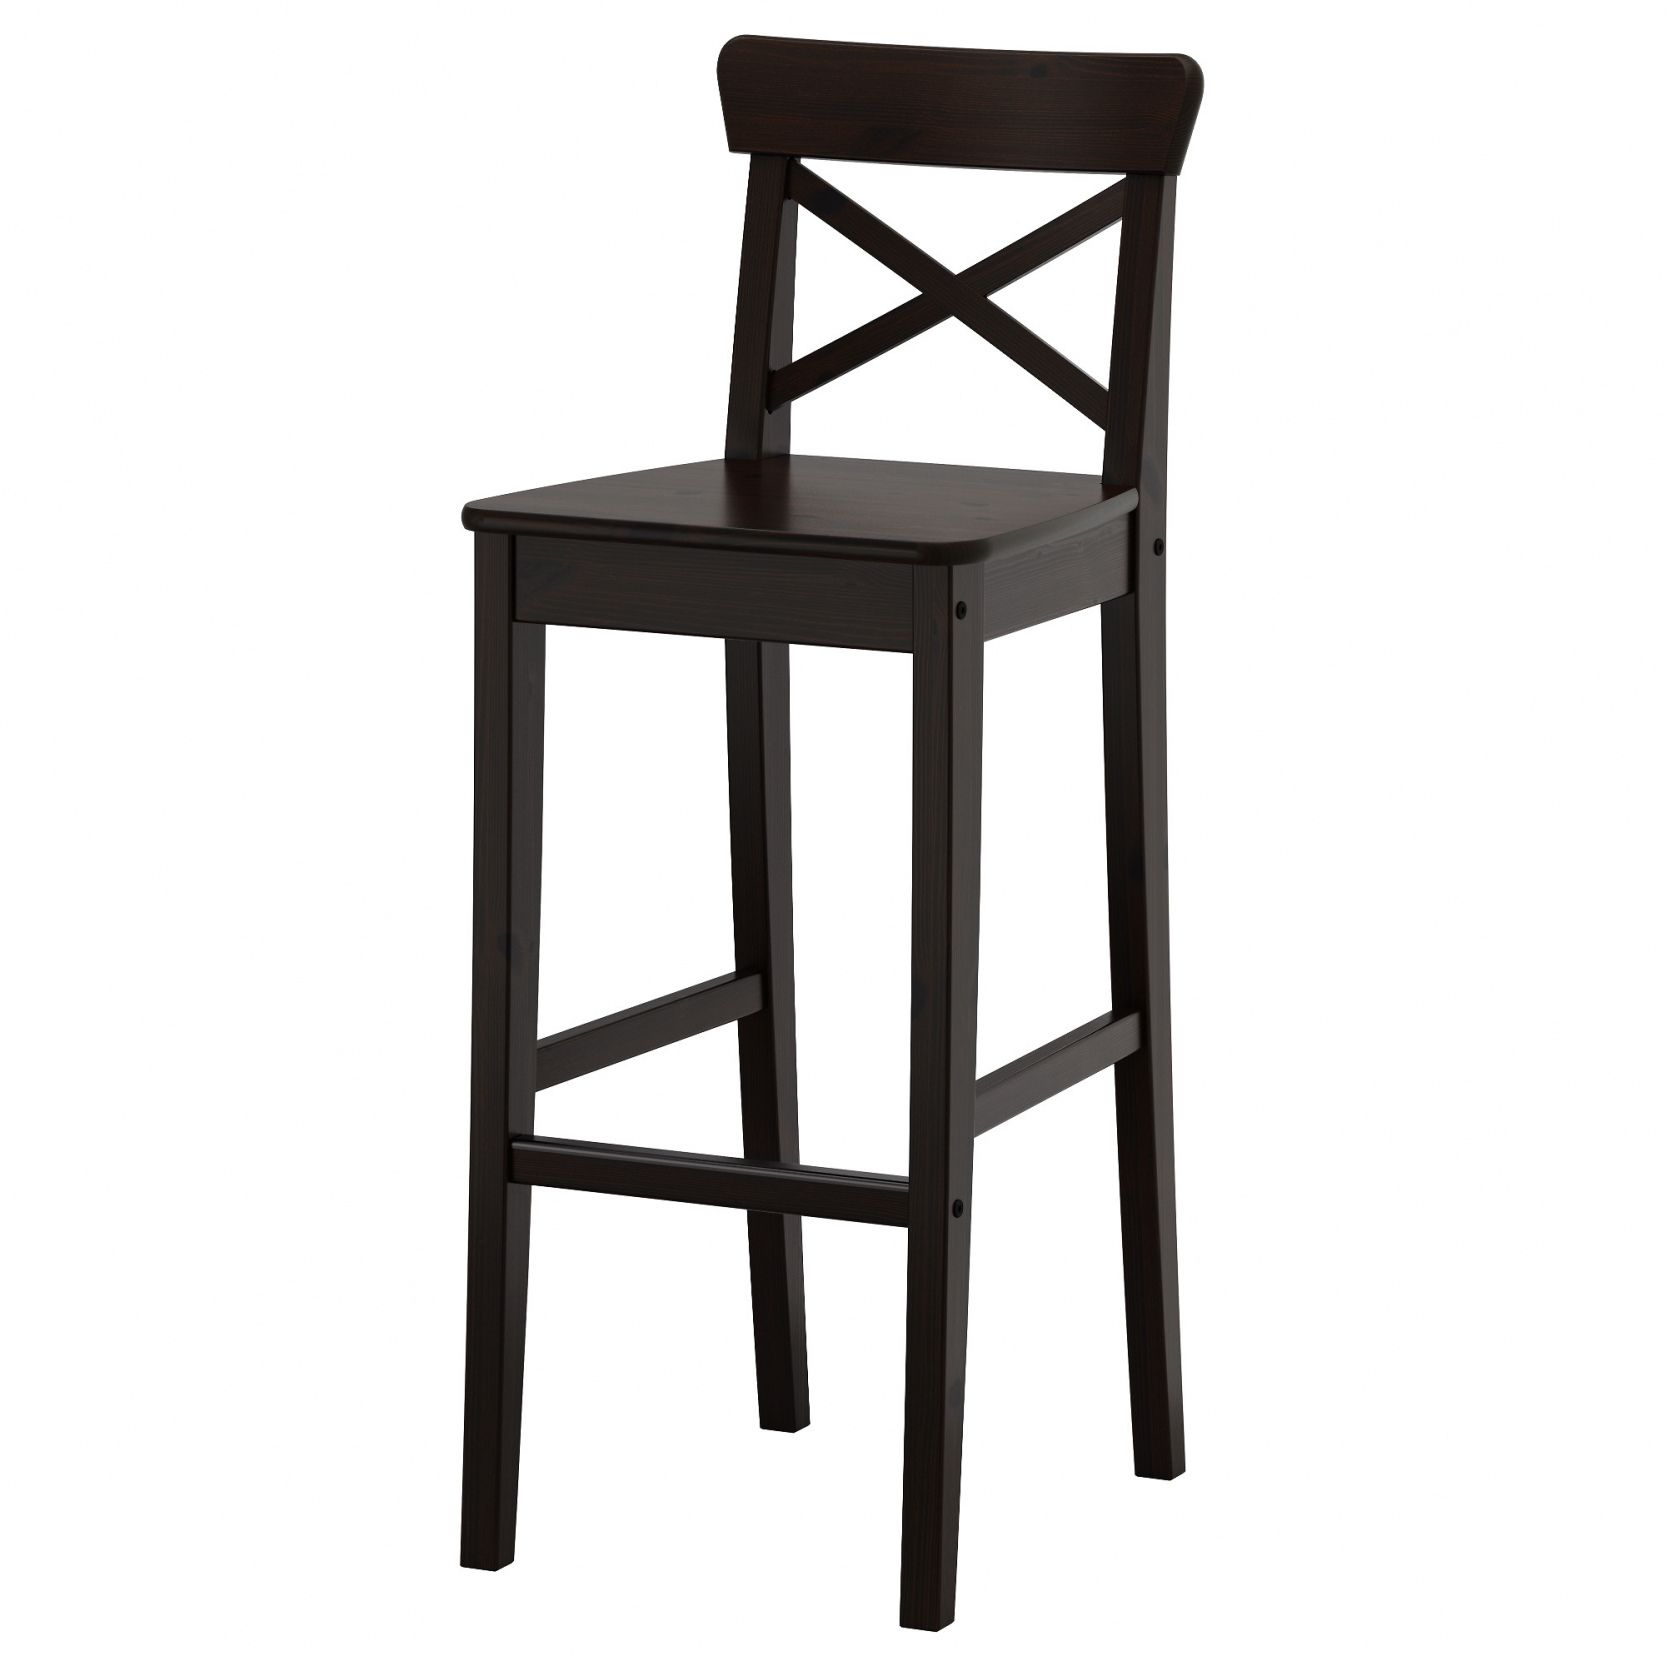 55 Bar Stool Baby High Chair Modern Home Furniture Check more at